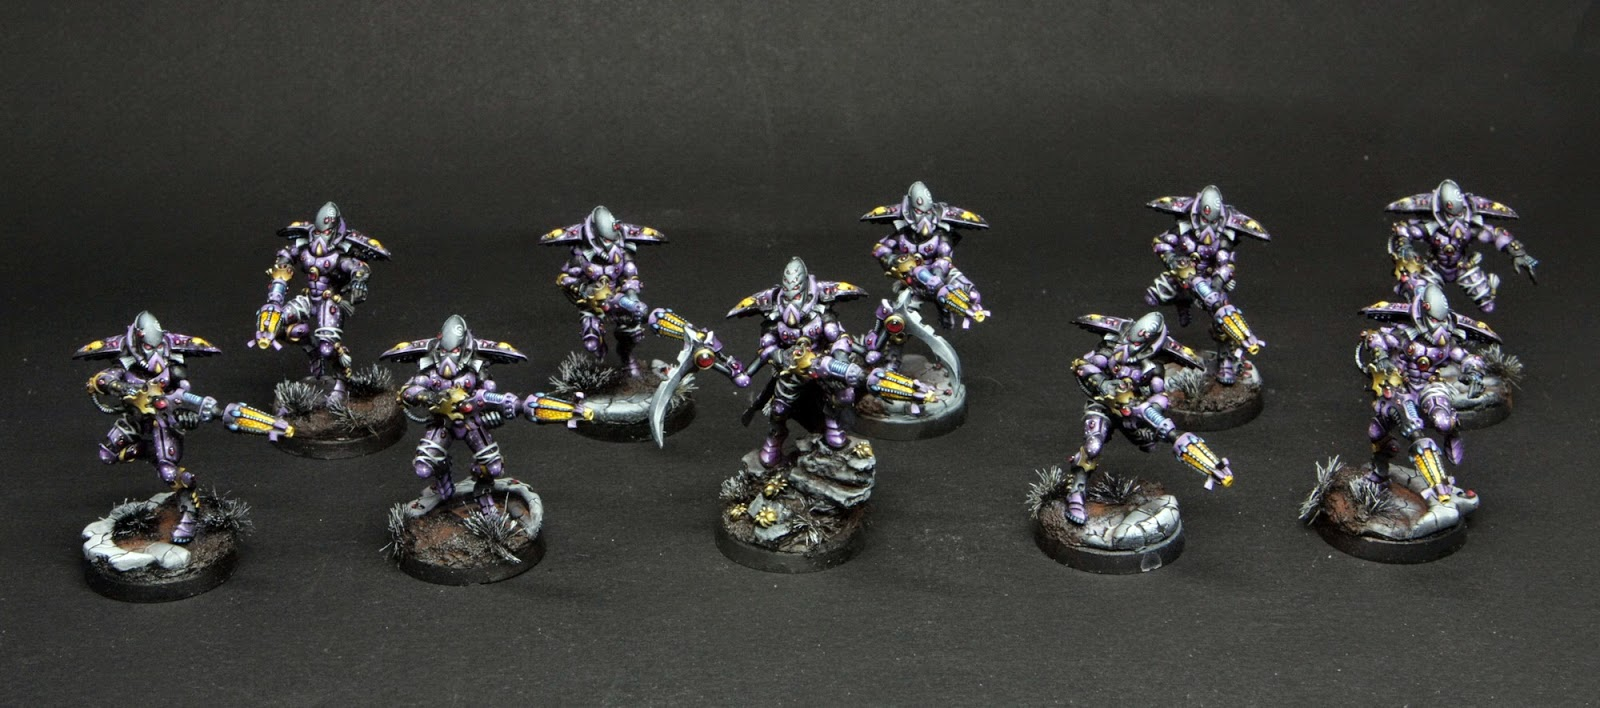 Hoperivers valley space eldar army warp spiders publicscrutiny Image collections